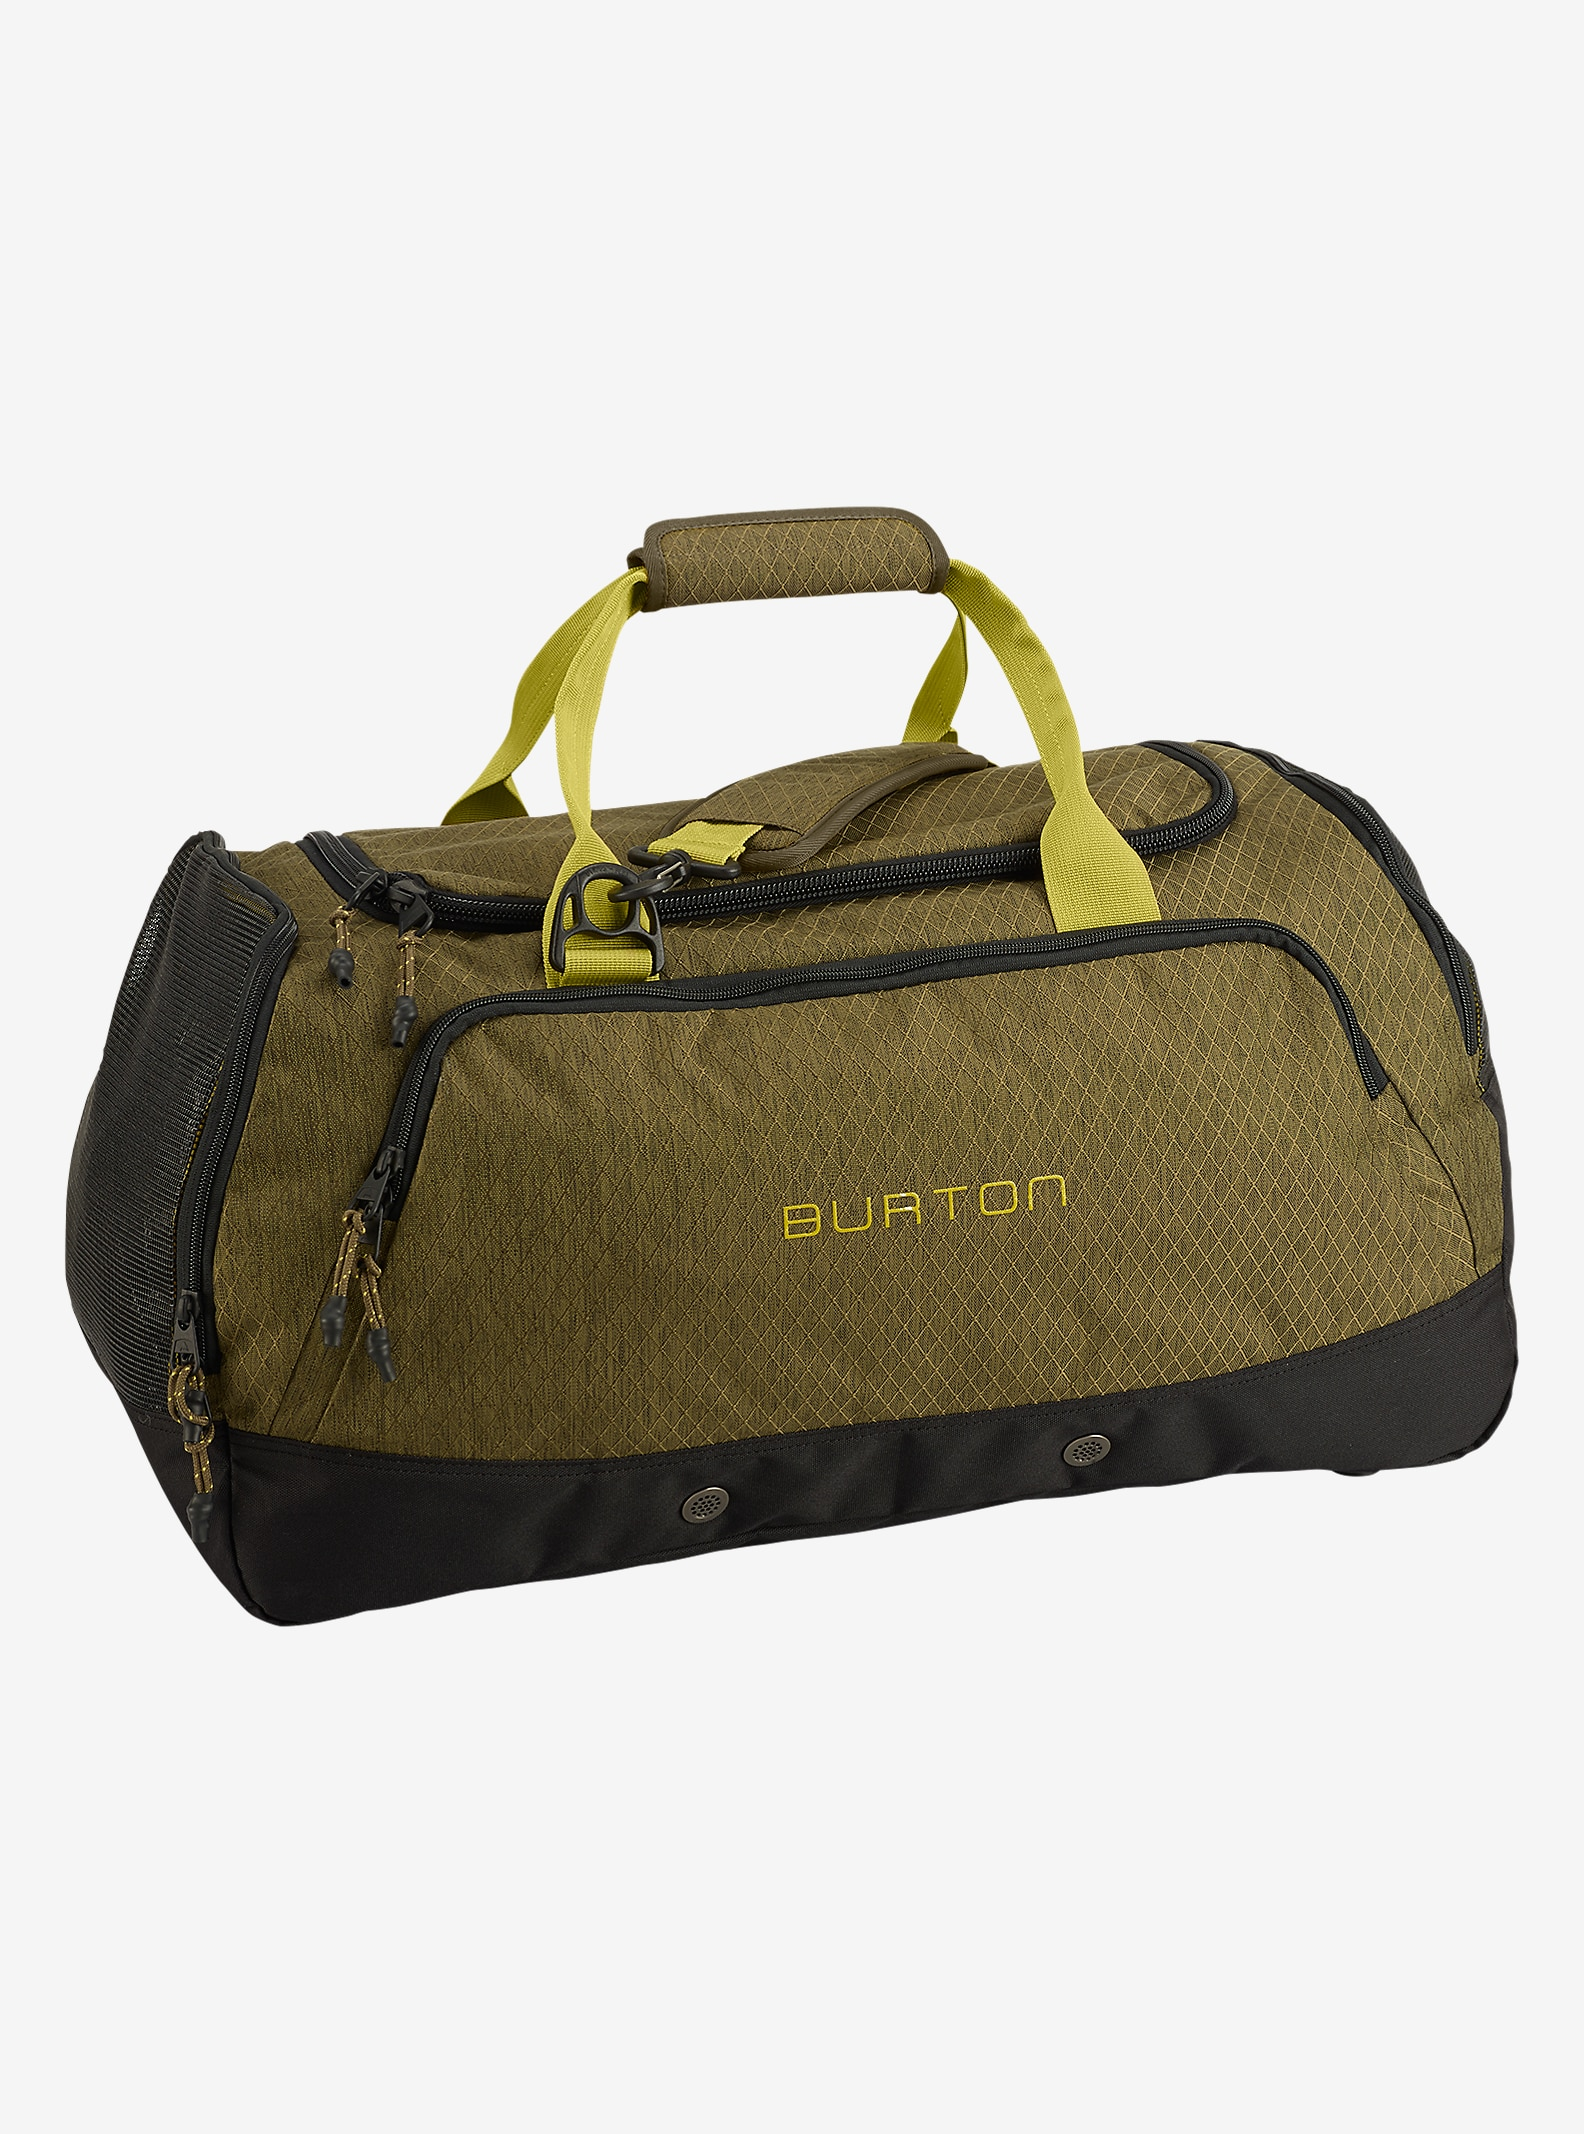 Burton Boothaus Bag 2.0 Large shown in Jungle Heather Diamond Ripstop